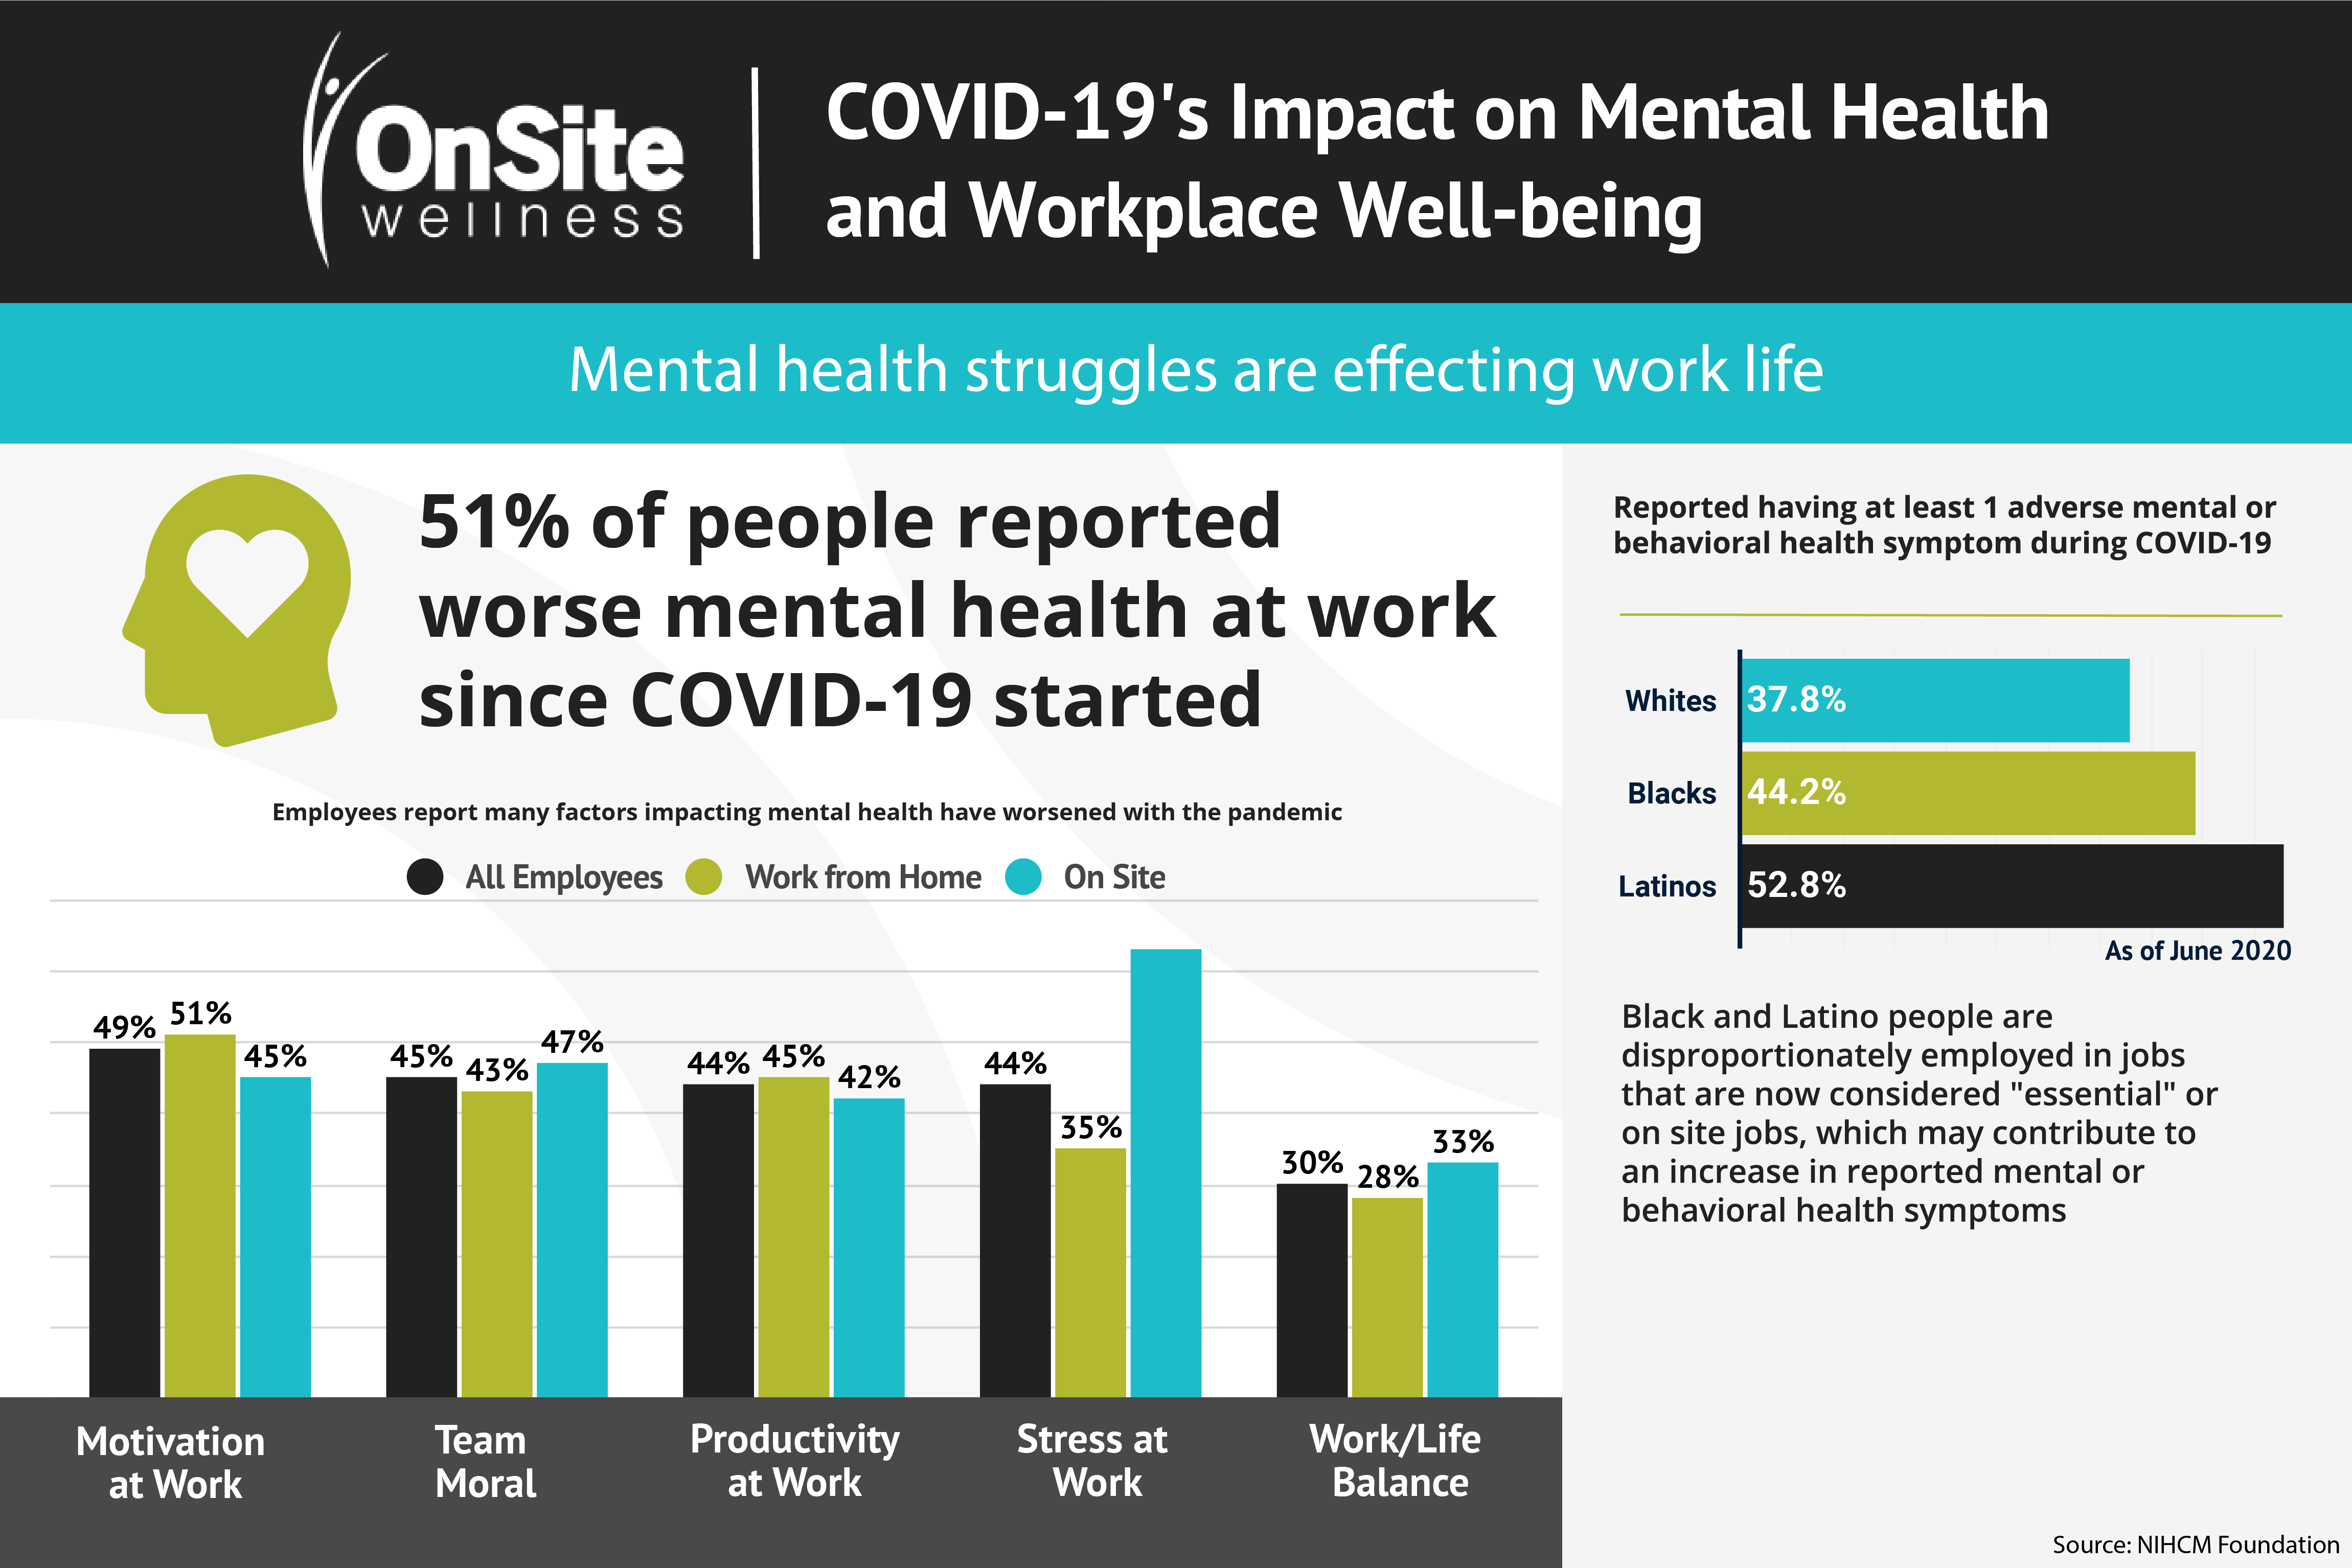 COVID-19 & Workplace Well-being: The Effect on Work Life